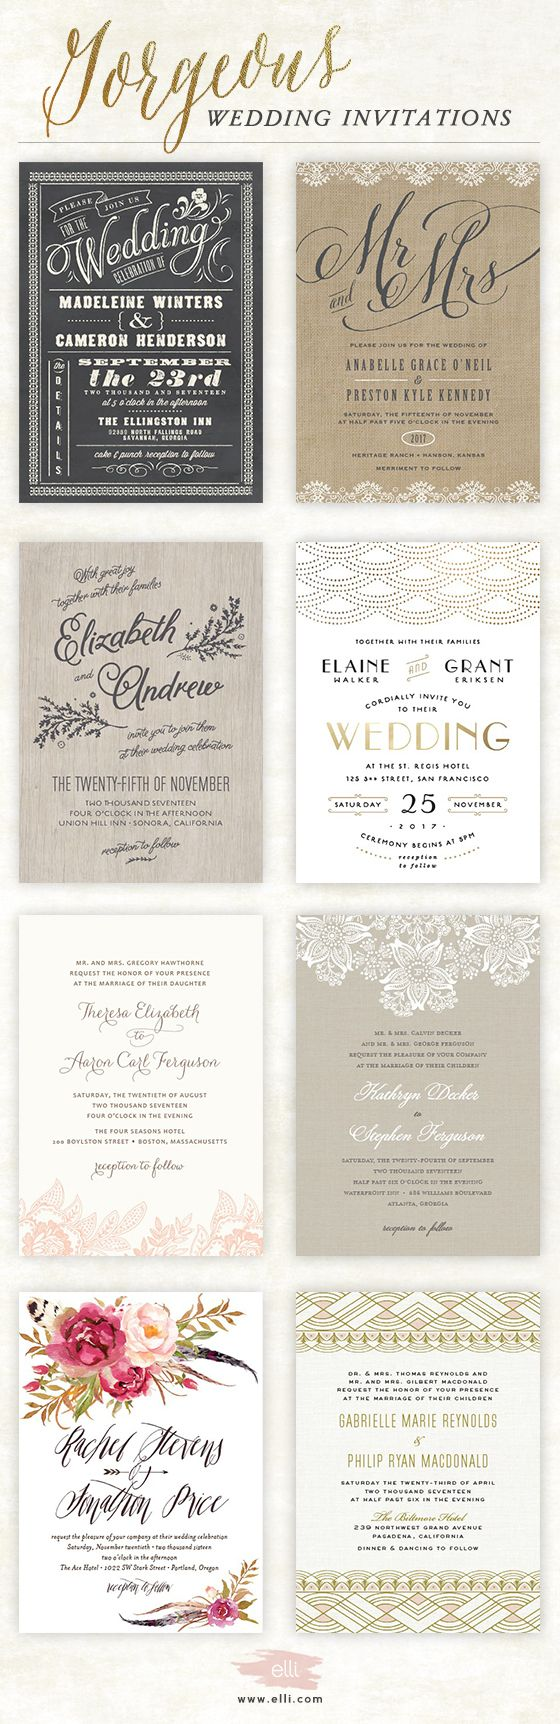 29 best images on Pinterest Invitation ideas Wedding